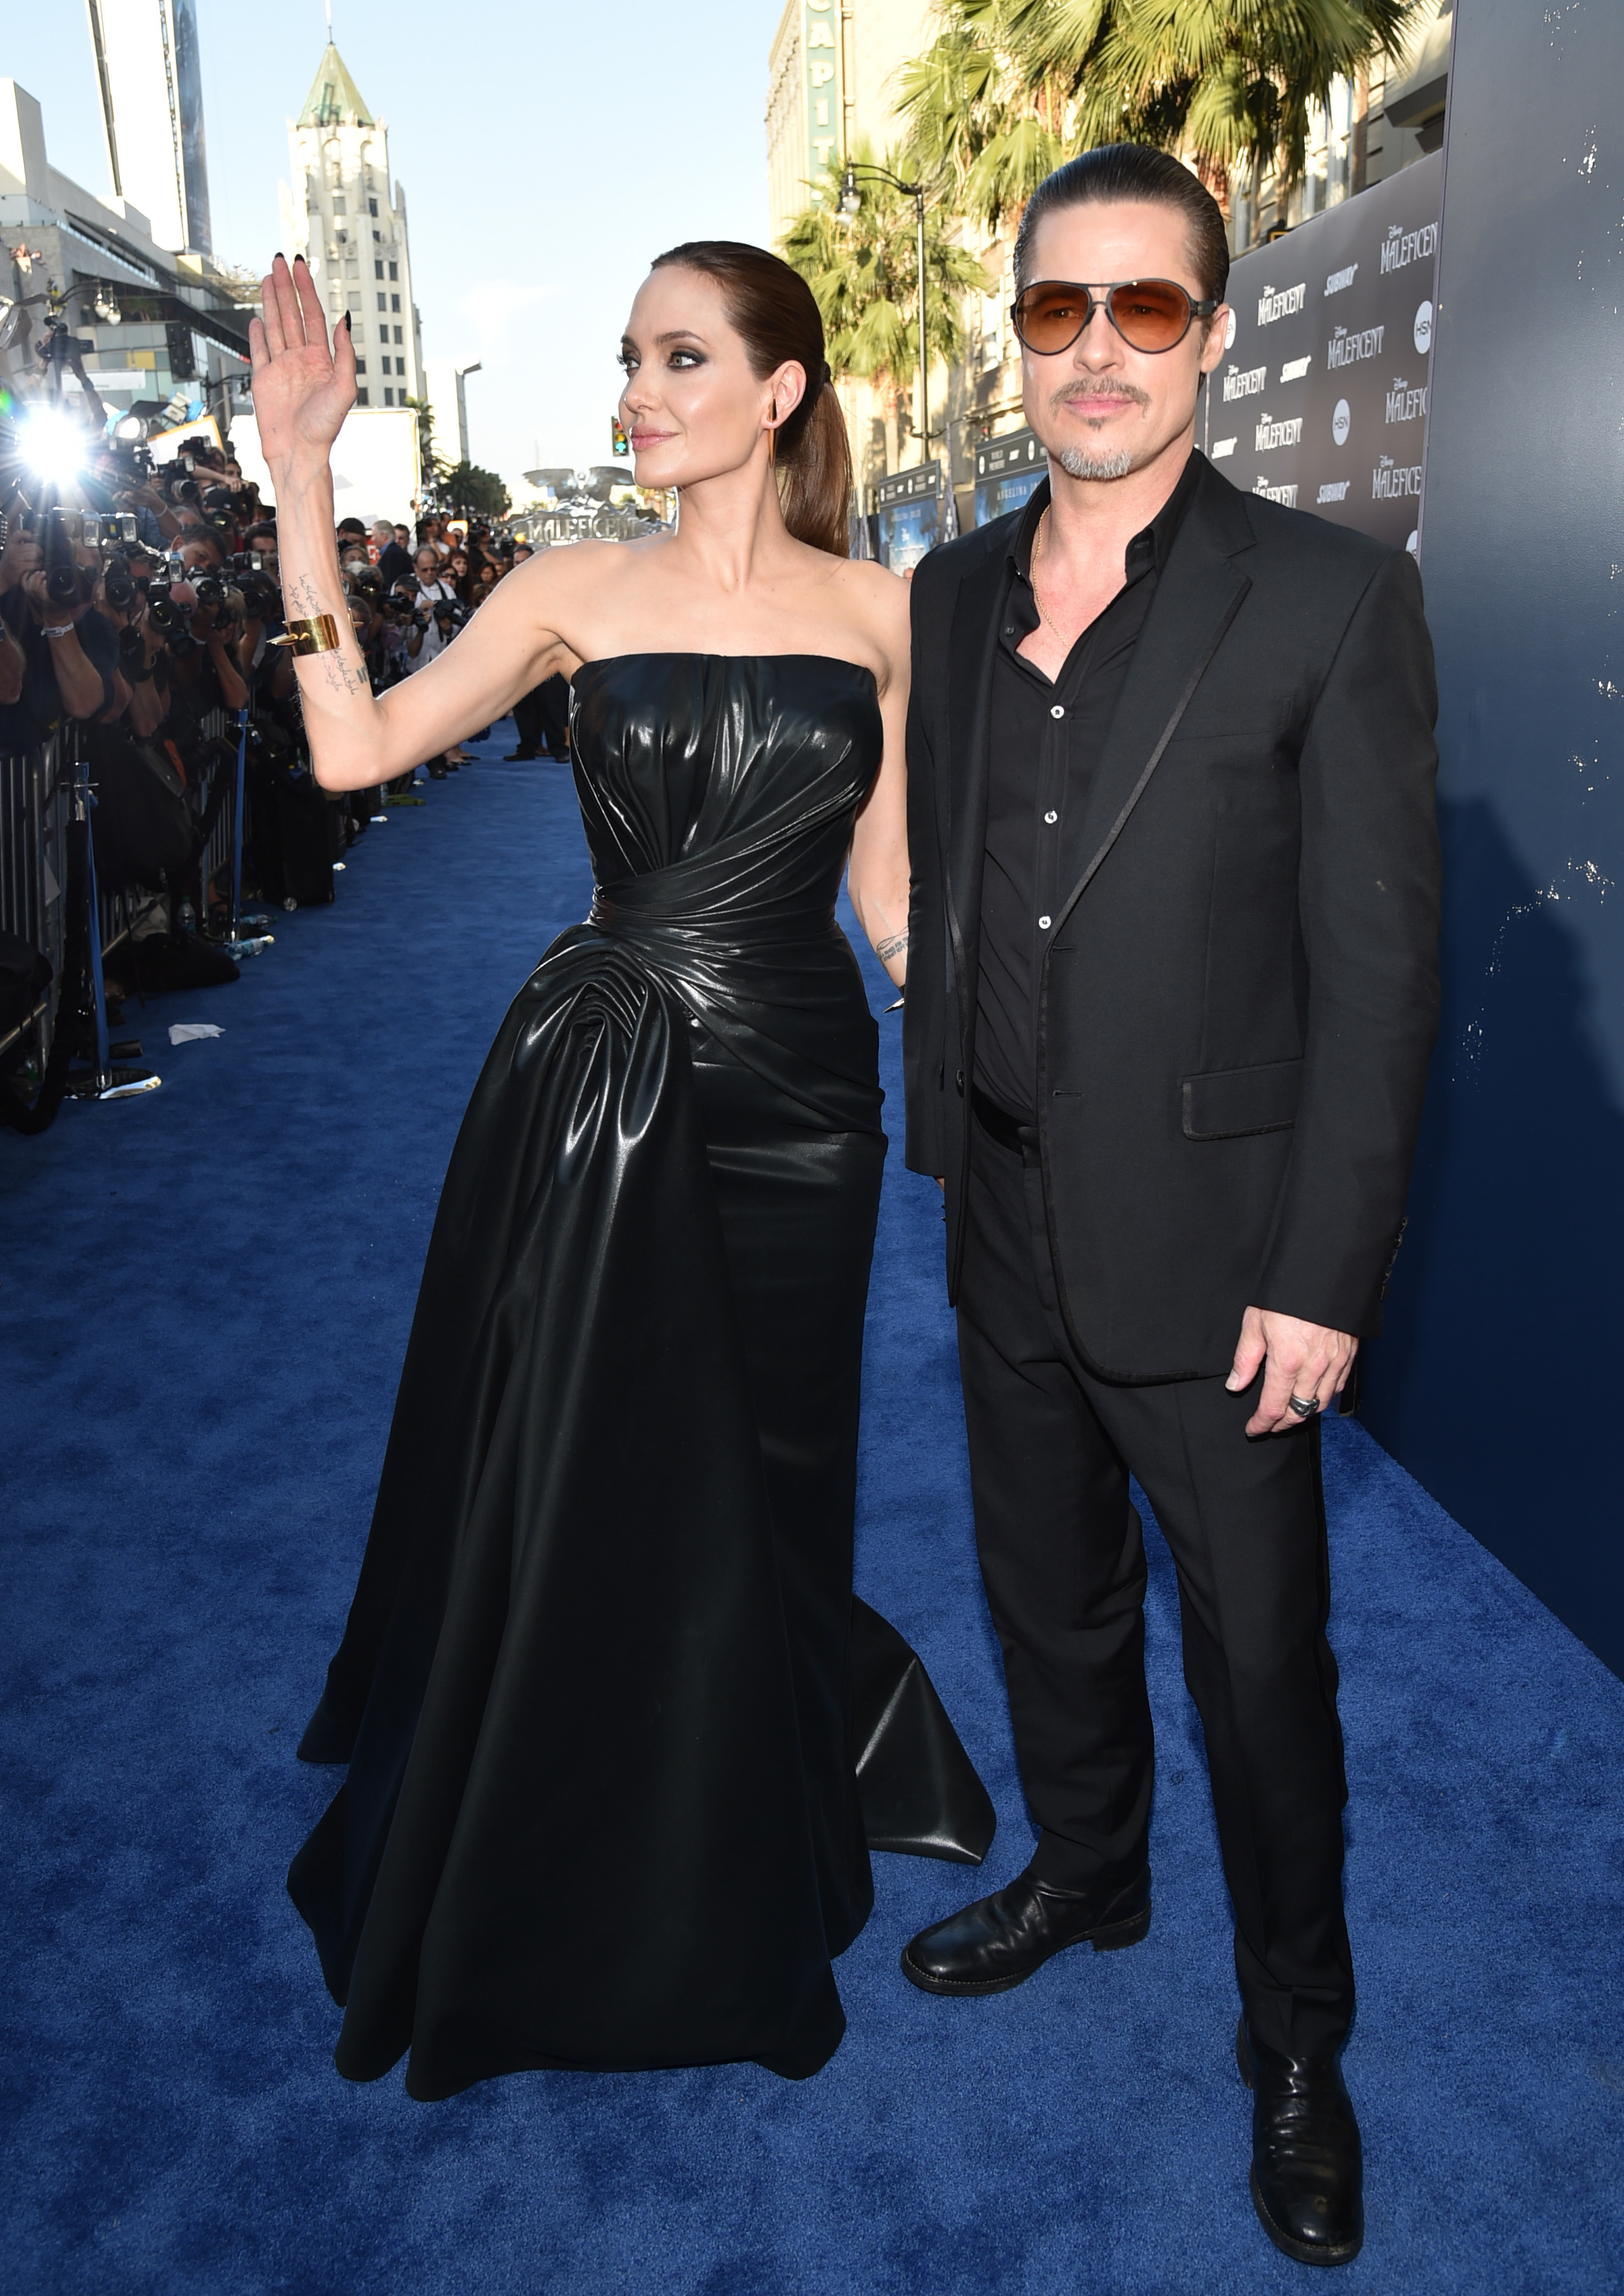 Brad Pitt Attacked At Maleficent Premiere The Blade